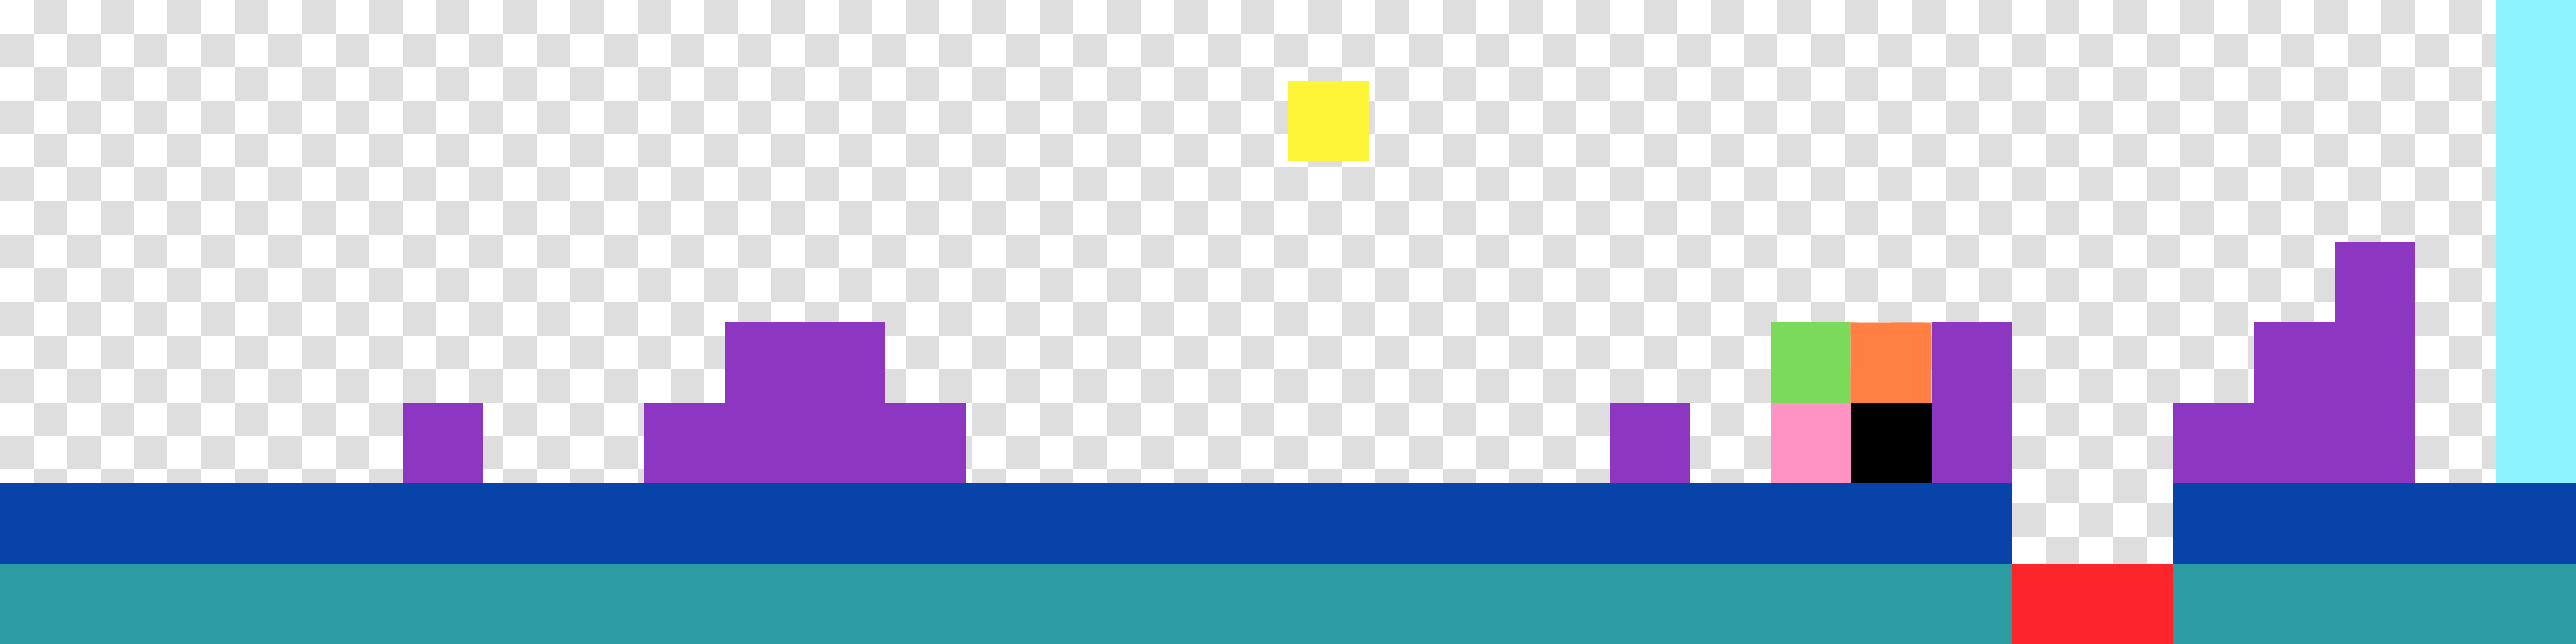 gaming_Banners_and_Alerts_and_MakeCode_Arcade2.png